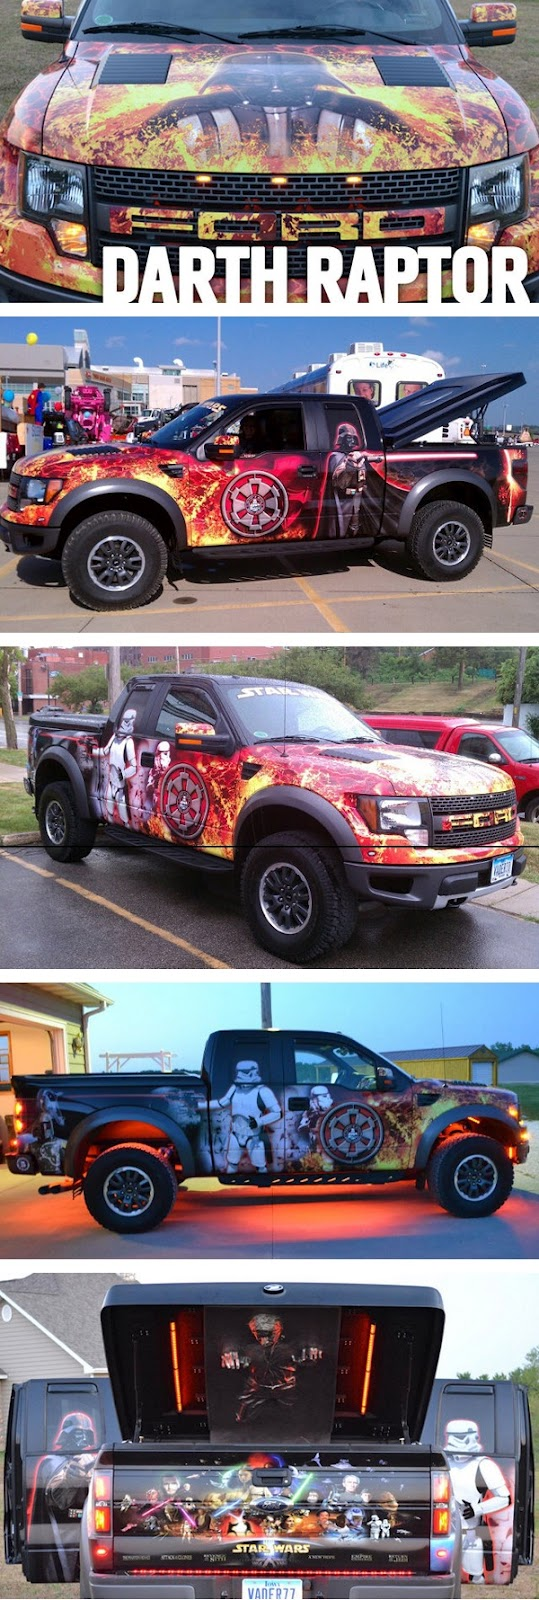 Super fan de Star Wars personaliza seu Ford  Raptor em Darth Raptor